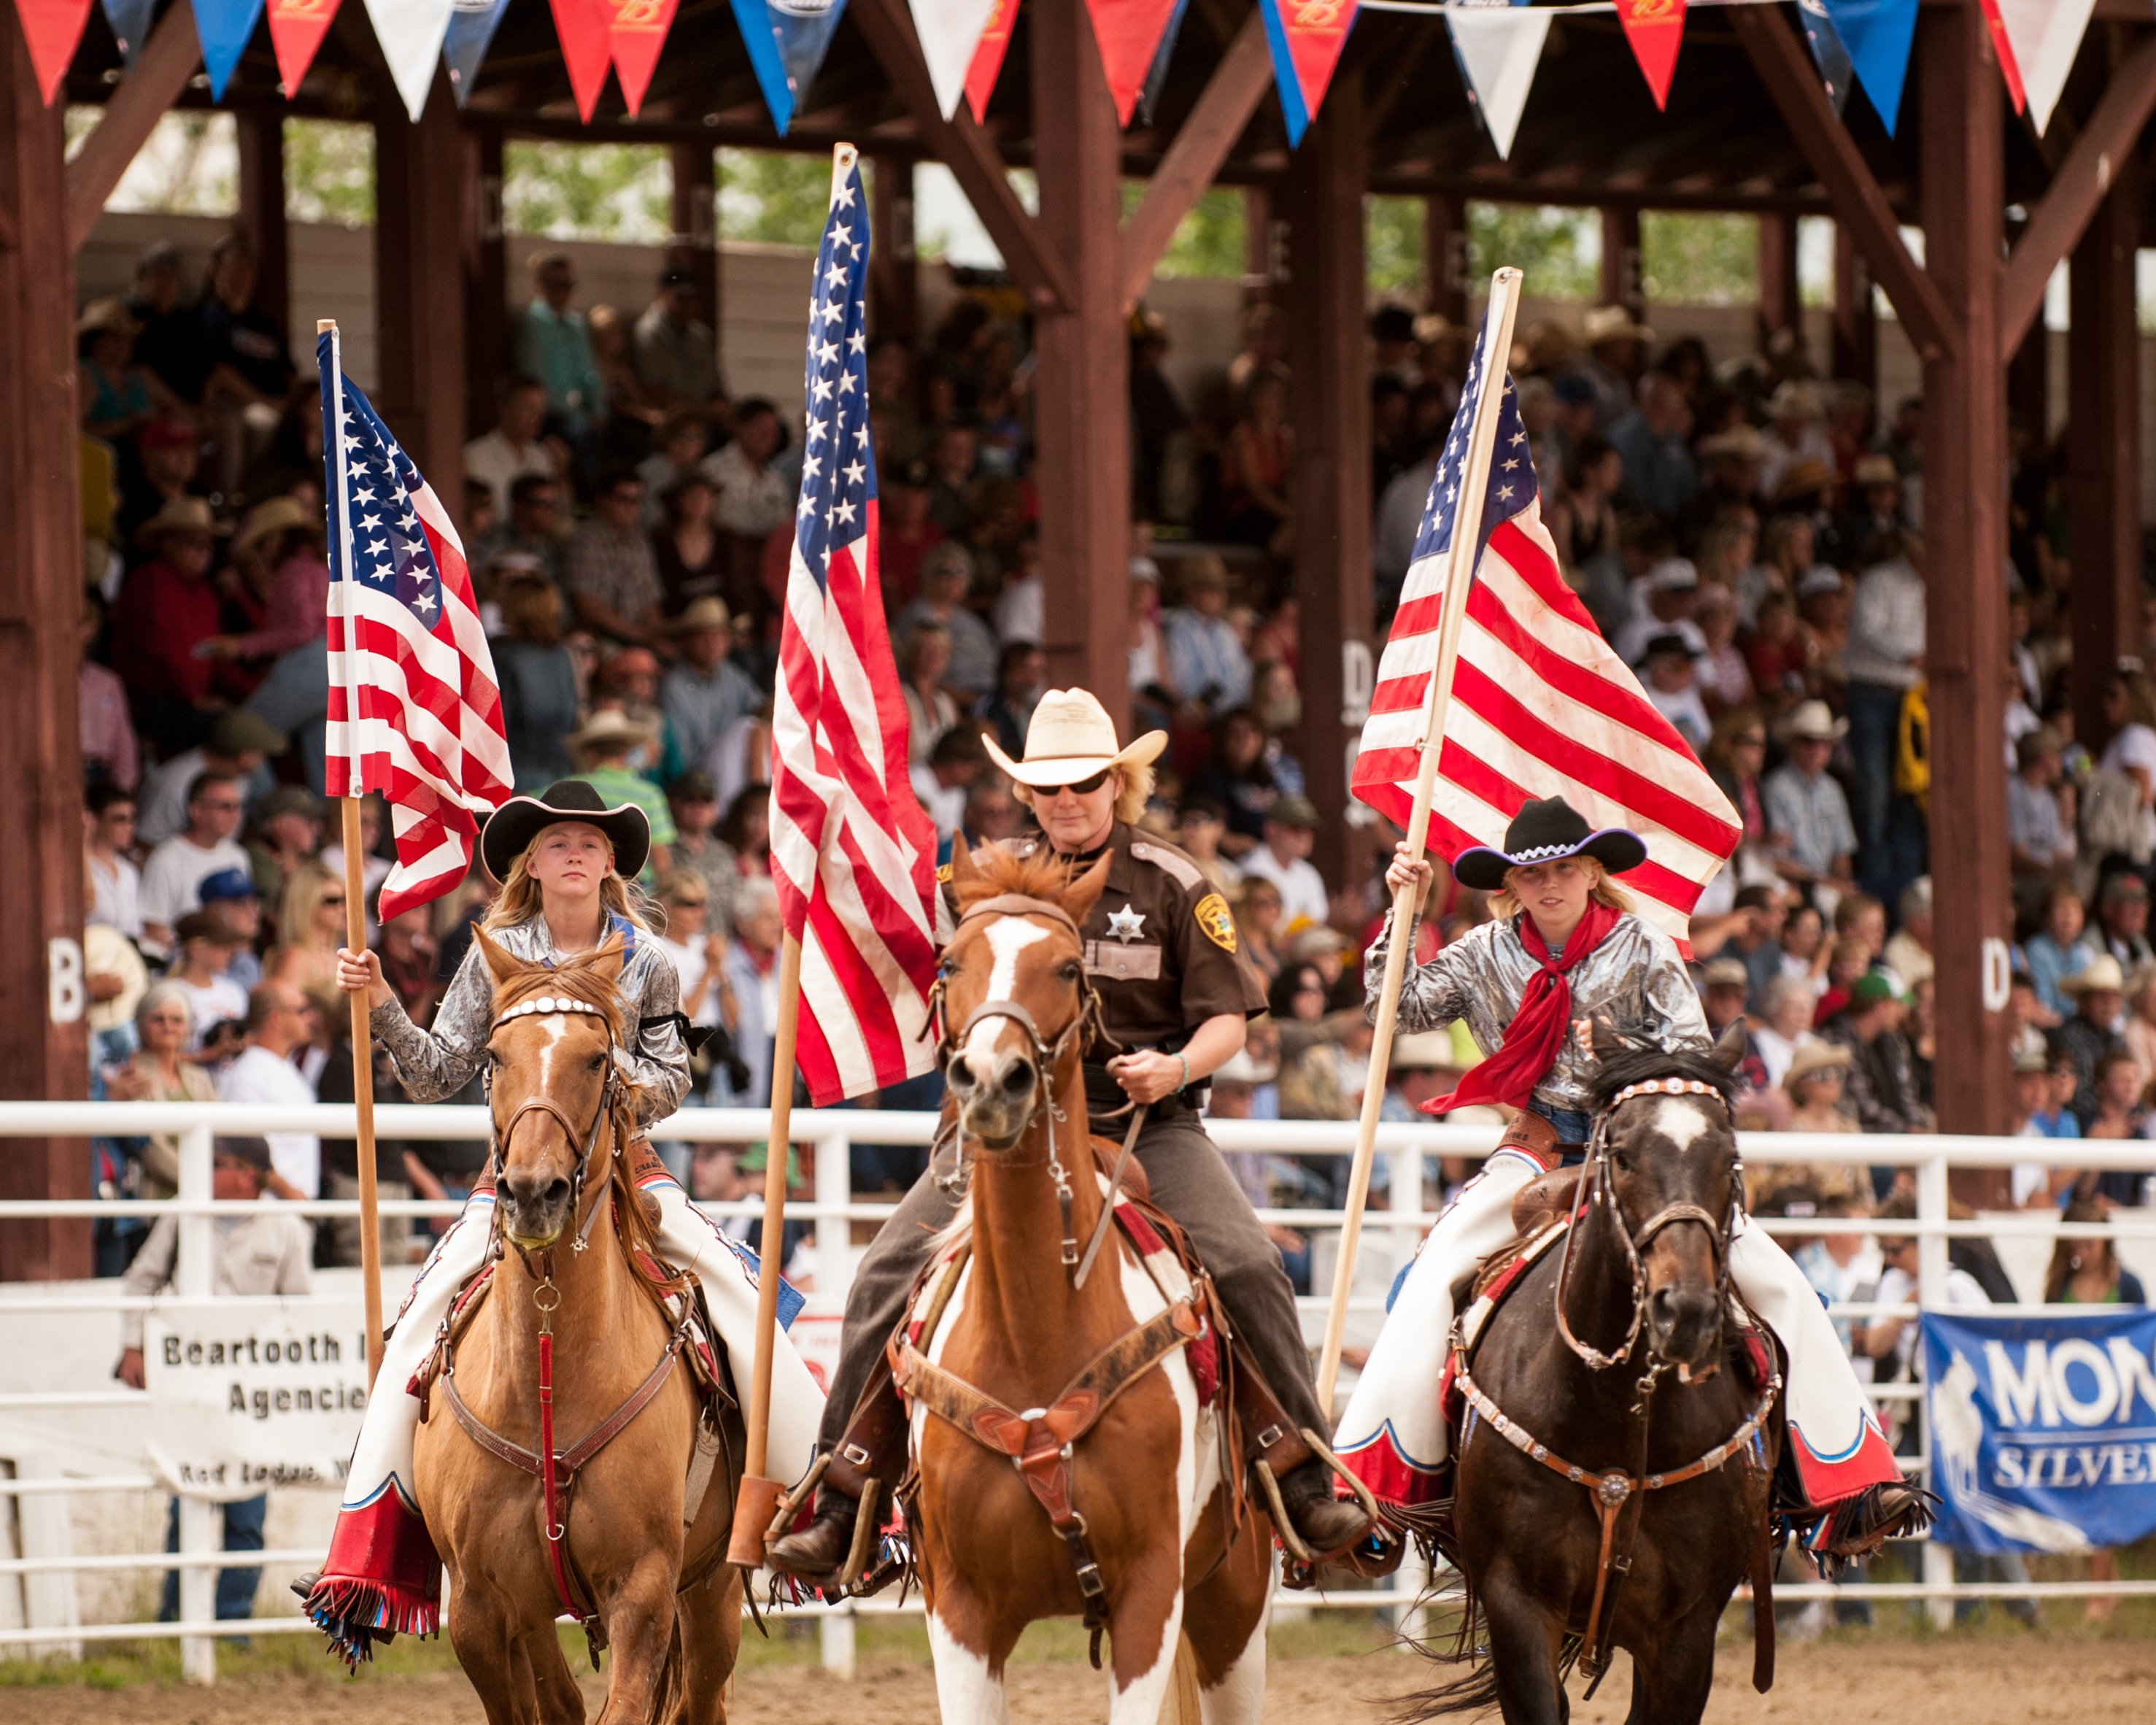 Home of Champions Rodeo & Parade in Red Lodge, Montana in Yellowstone Country Montana